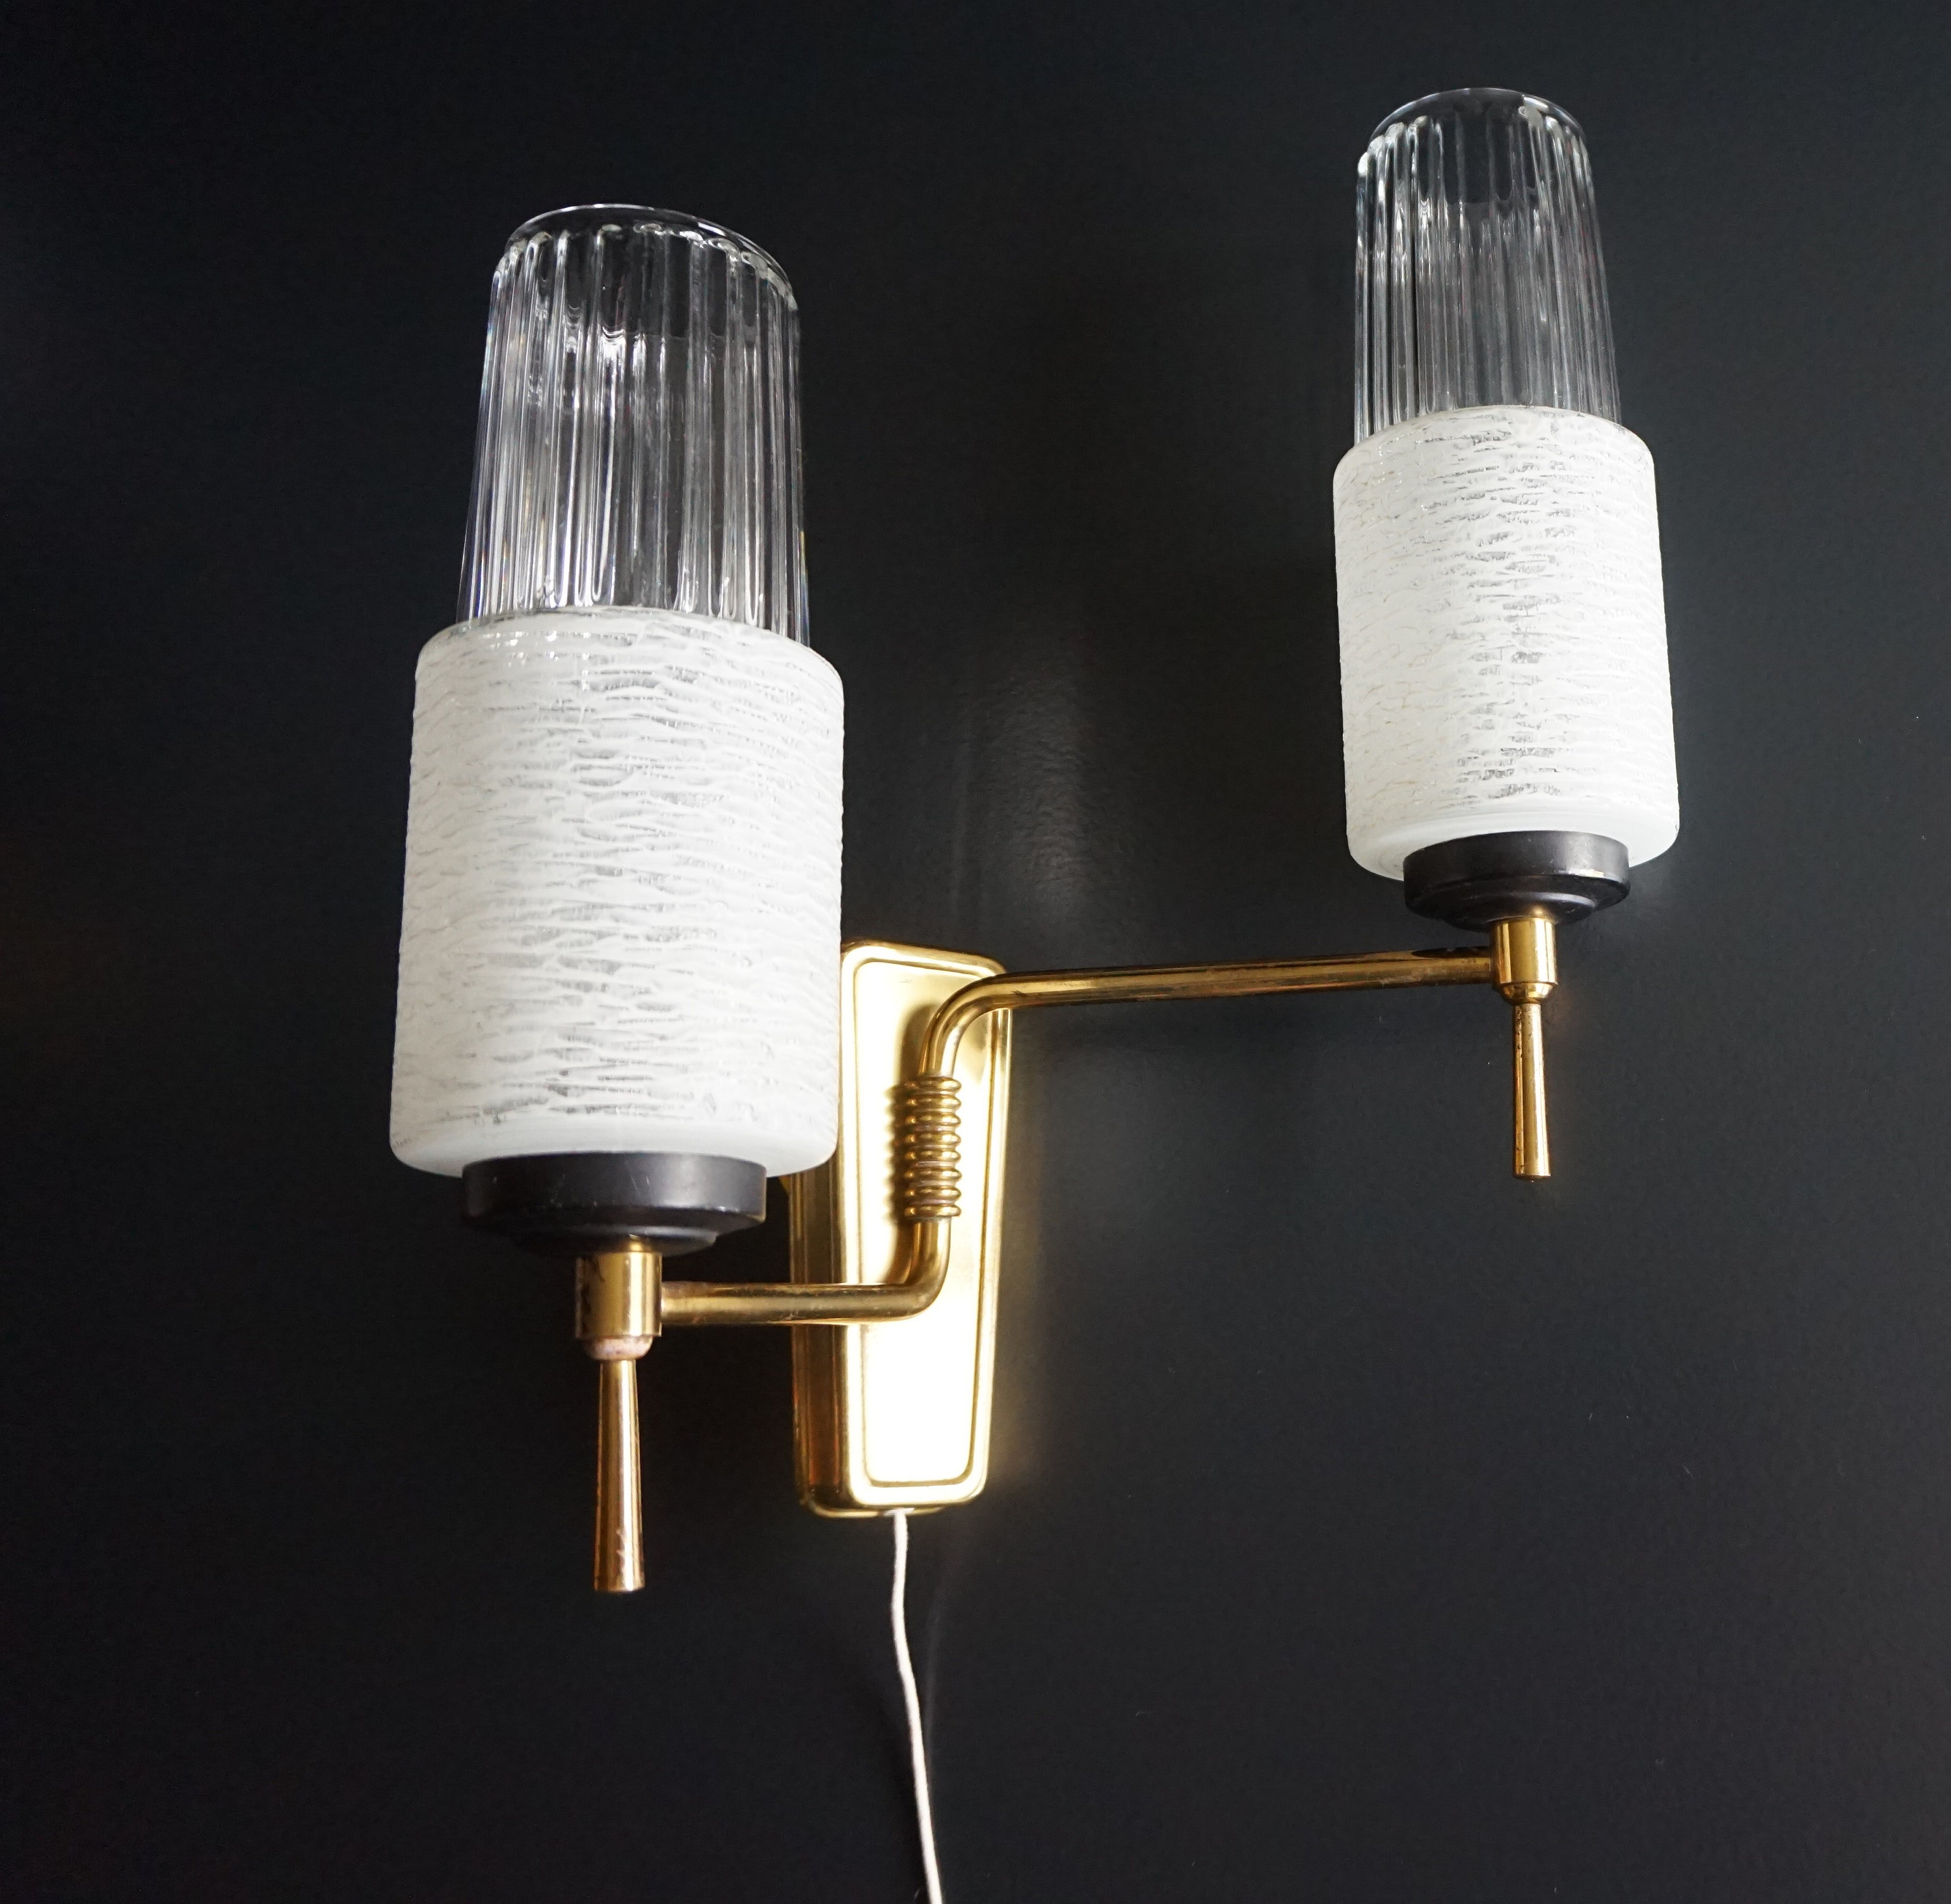 Image of 1950s French Wall Light // Mid Century Wall Light // Vintage Wall Light.